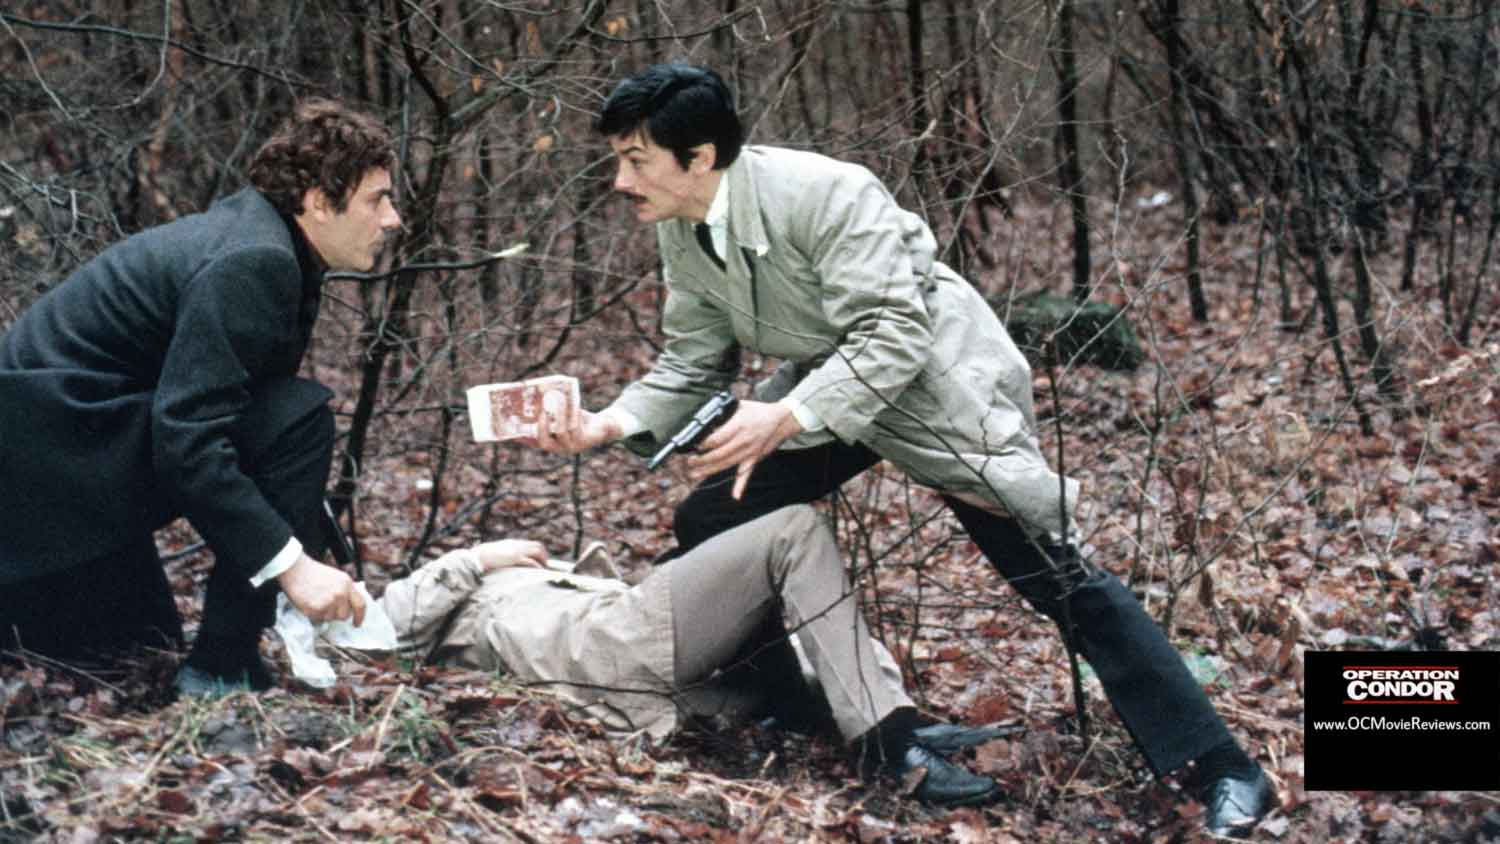 Le Cercle Rouge (The Red Circle) Review – They're Born Innocent But It Doesn't Last - OC Movie Reviews - Movie Reviews, Movie News, Documentary Reviews, Short Films, Short Film Reviews, Trailers, Movie Trailers, Interviews, film reviews, film news, hollywood, indie films, documentaries